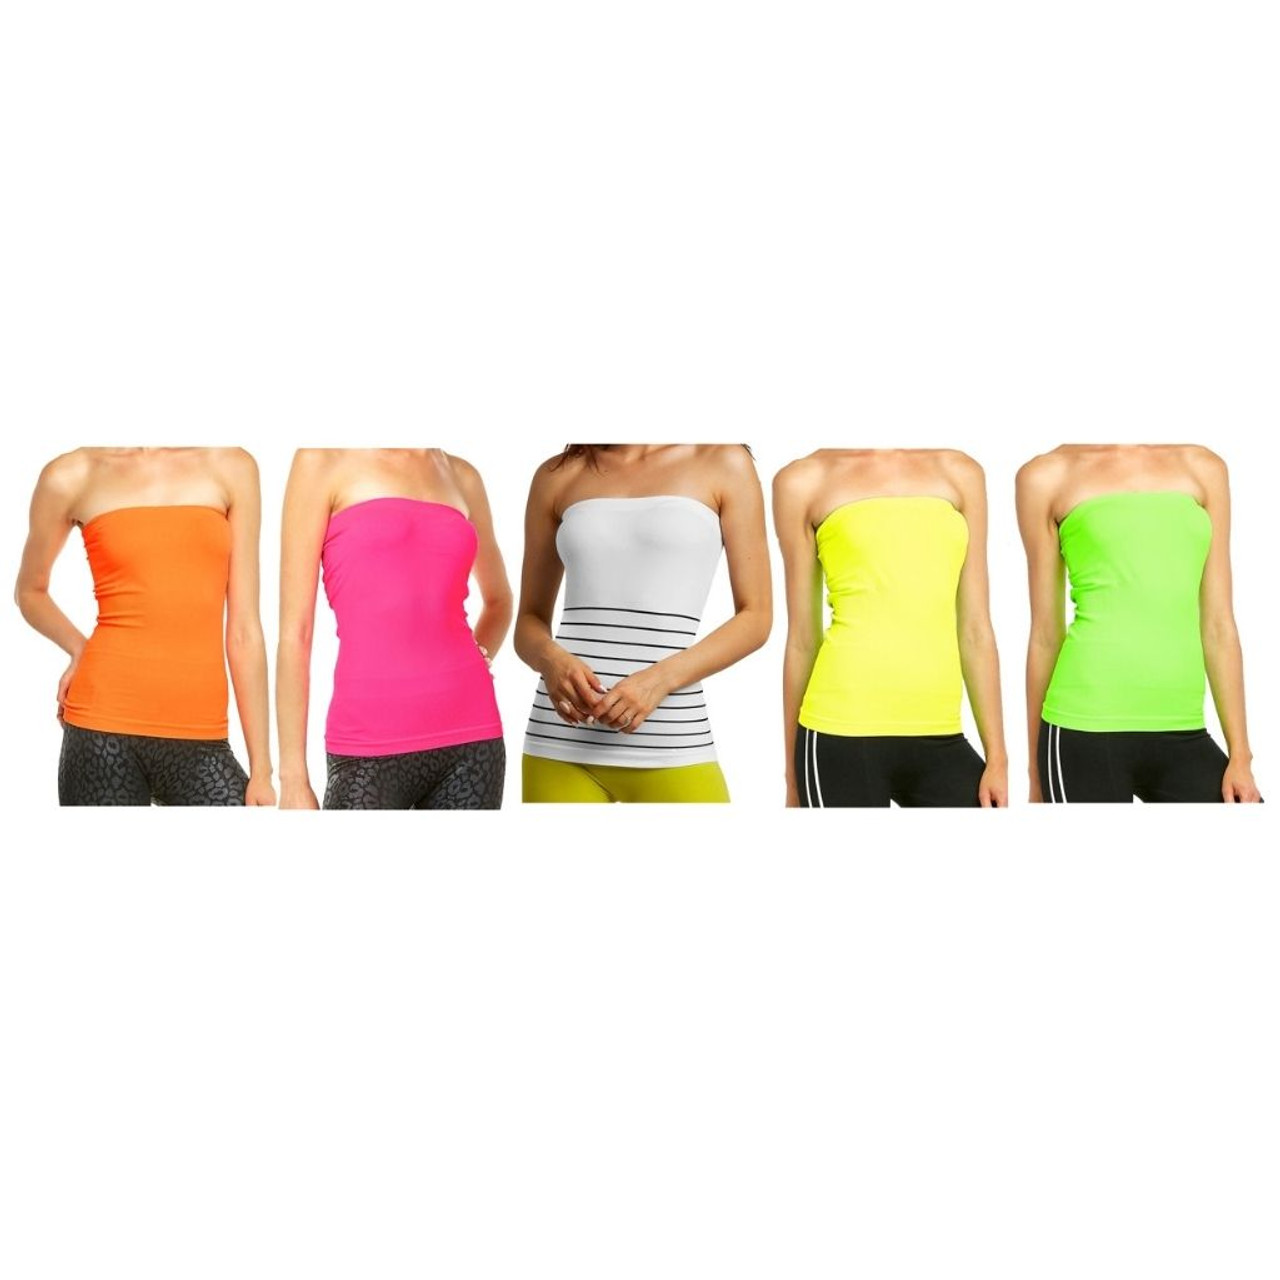 Women's Moisture-Wicking Bandeau Tube Top (5-Pack) $17.99 (86% OFF)